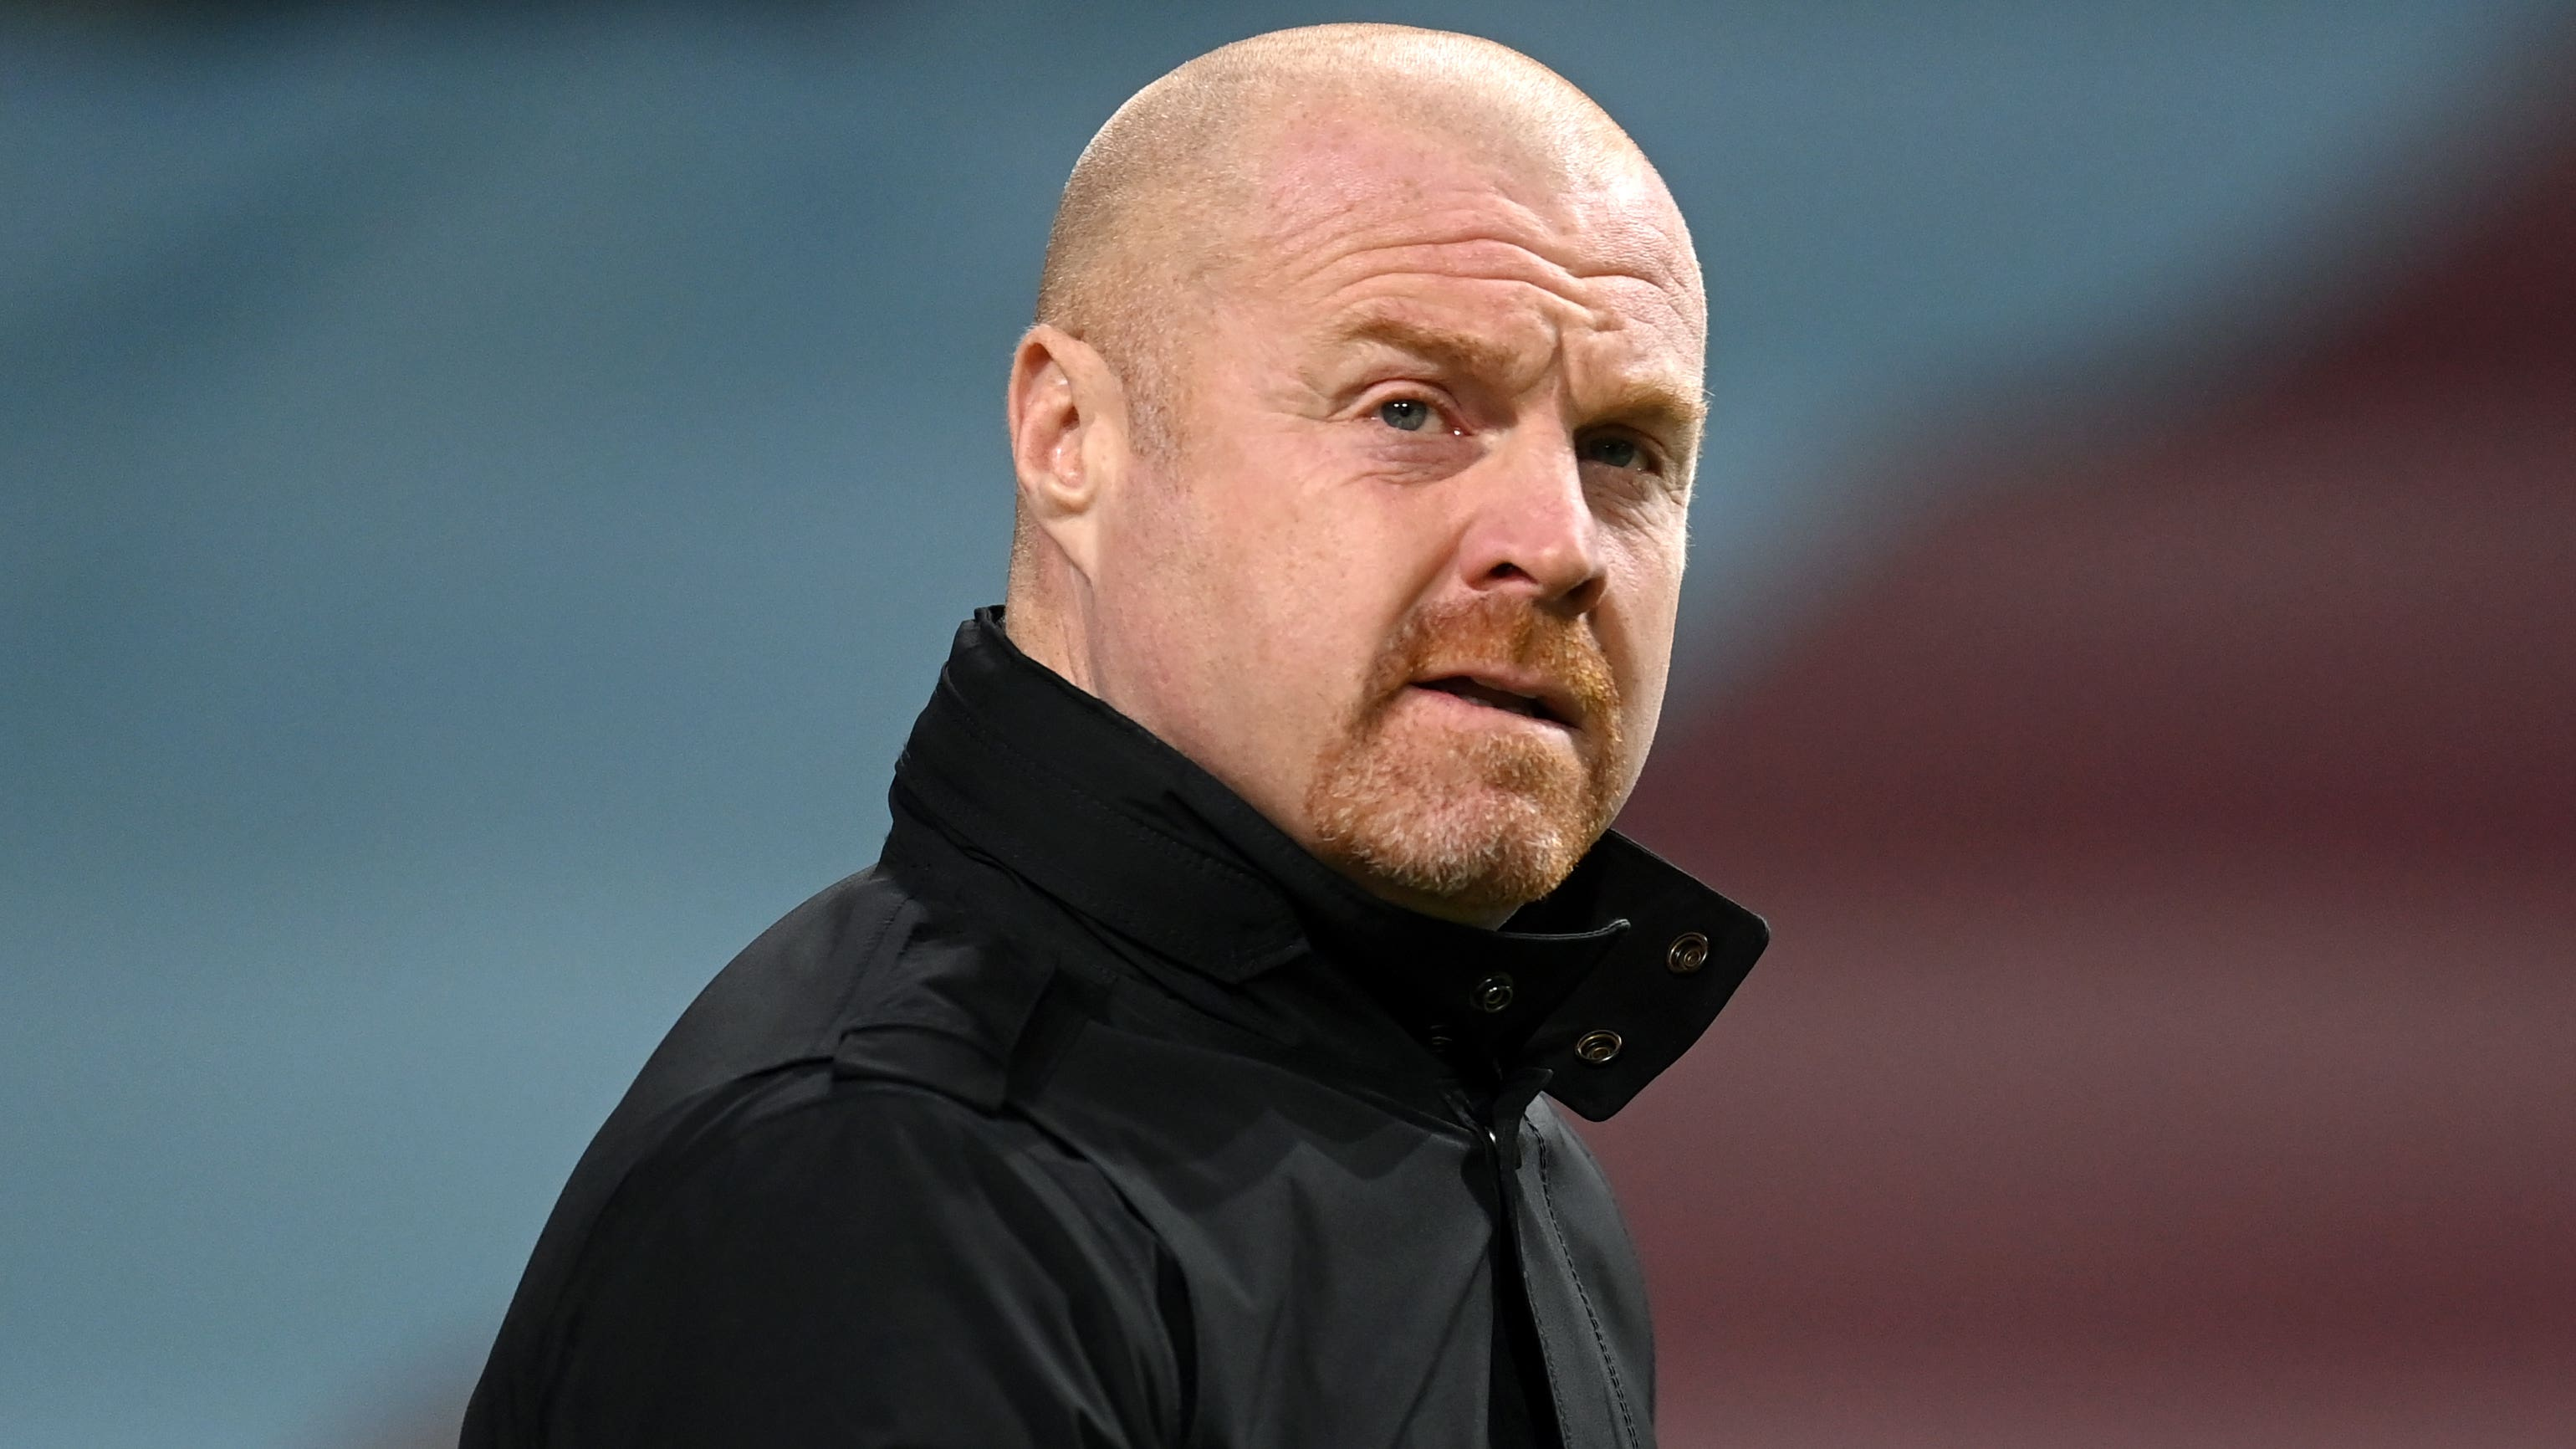 Sean Dyche pleased with Burnley's progress